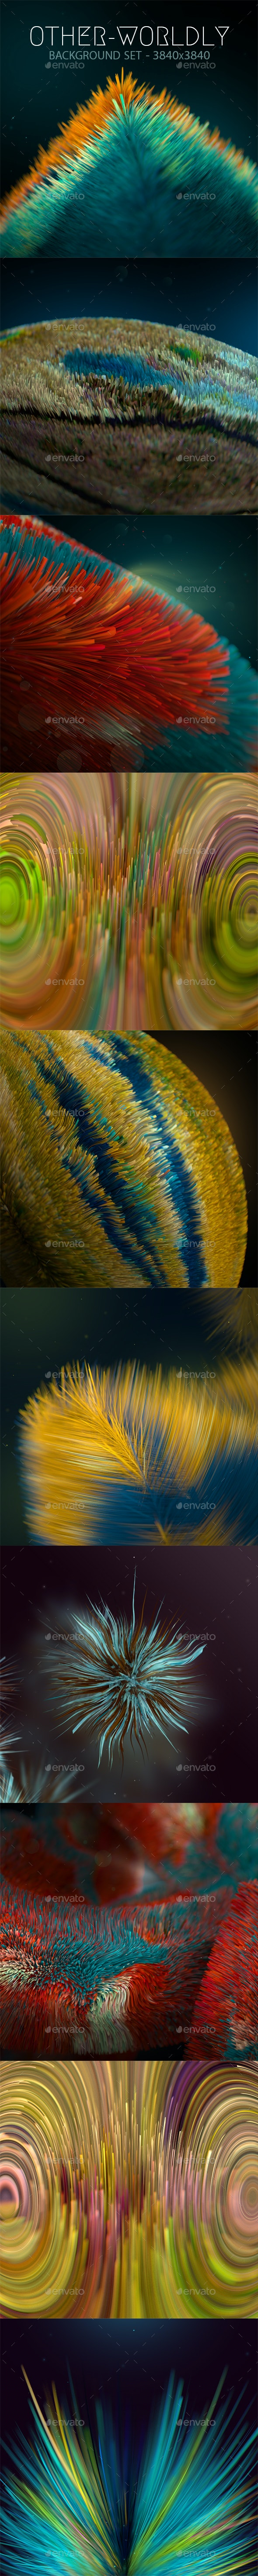 Other-worldly Microscopic Background Set - 3D Backgrounds